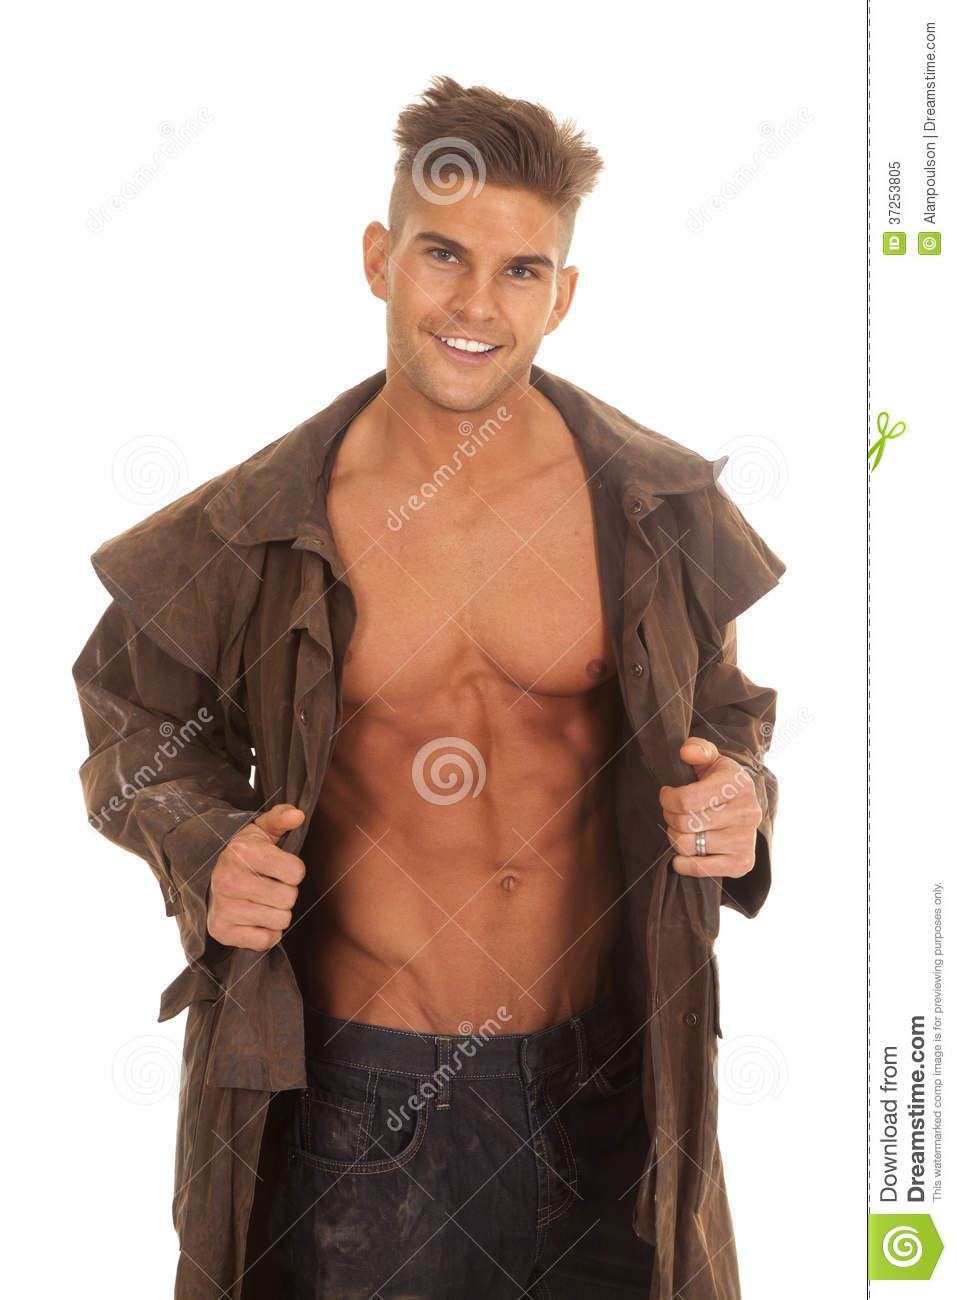 Man In Duster No Shirt Smile Royalty Free Stock Photo - Image ...